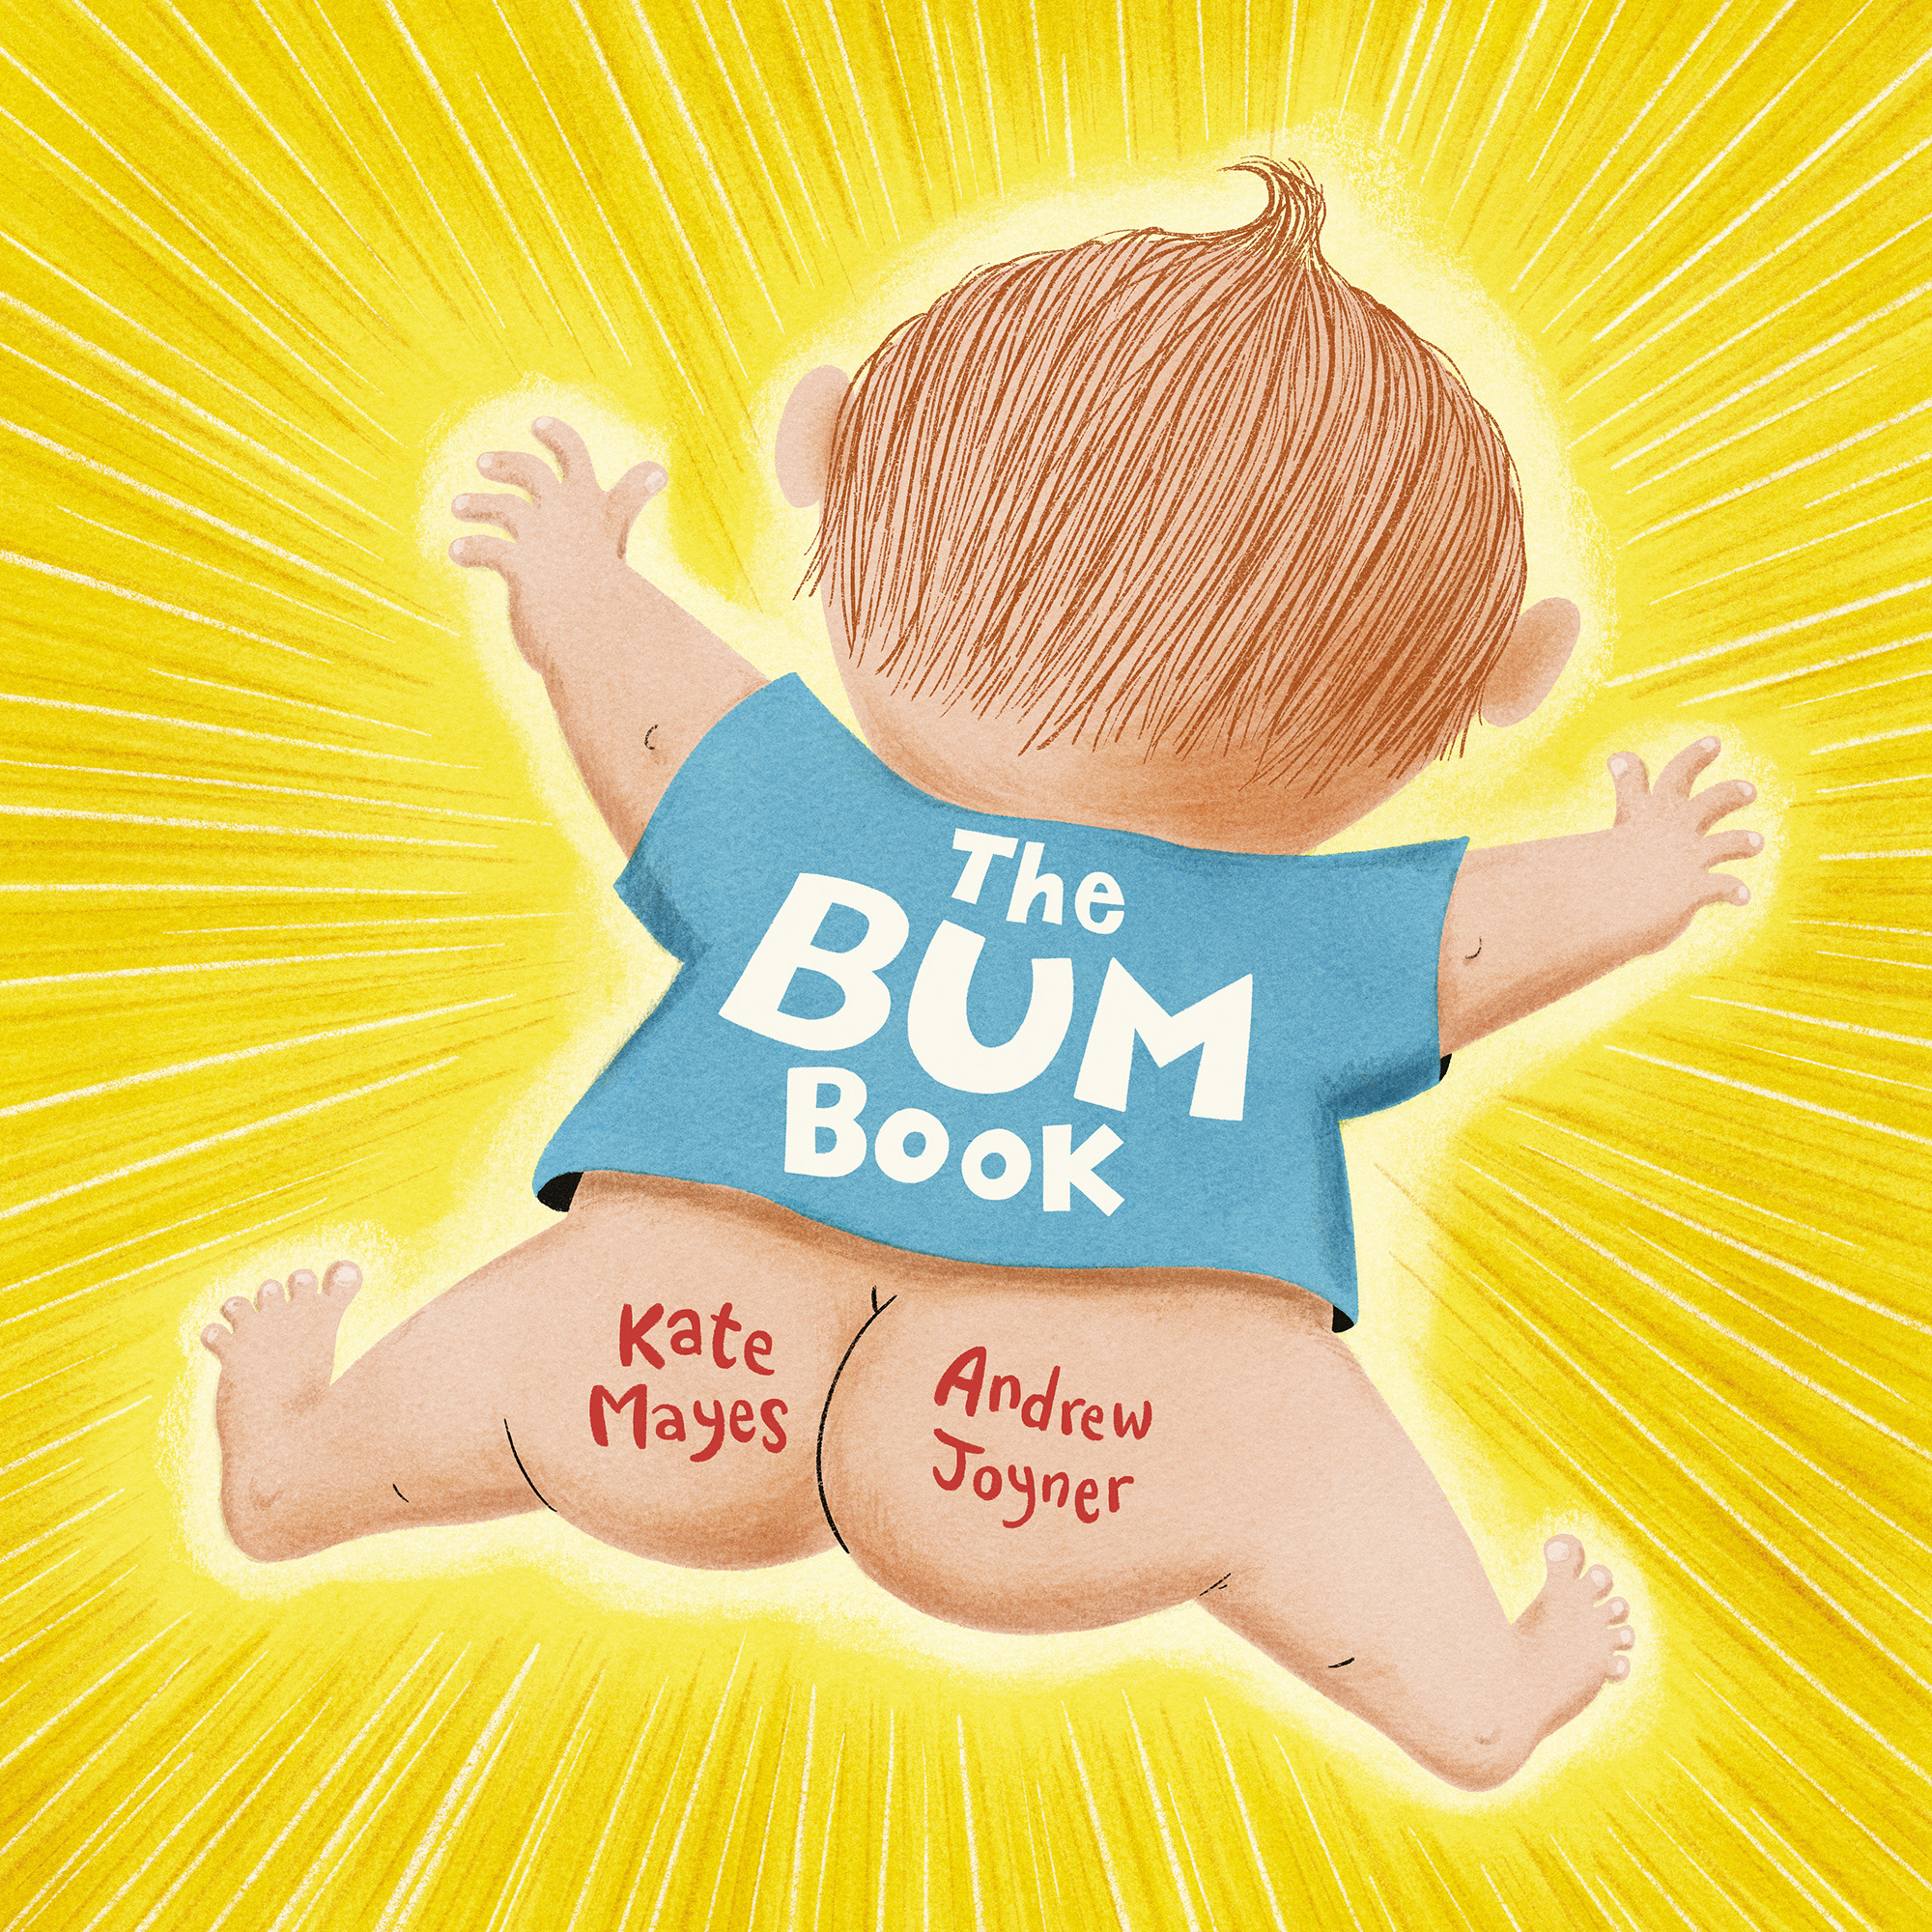 The Bum Book  by Kate Mayes